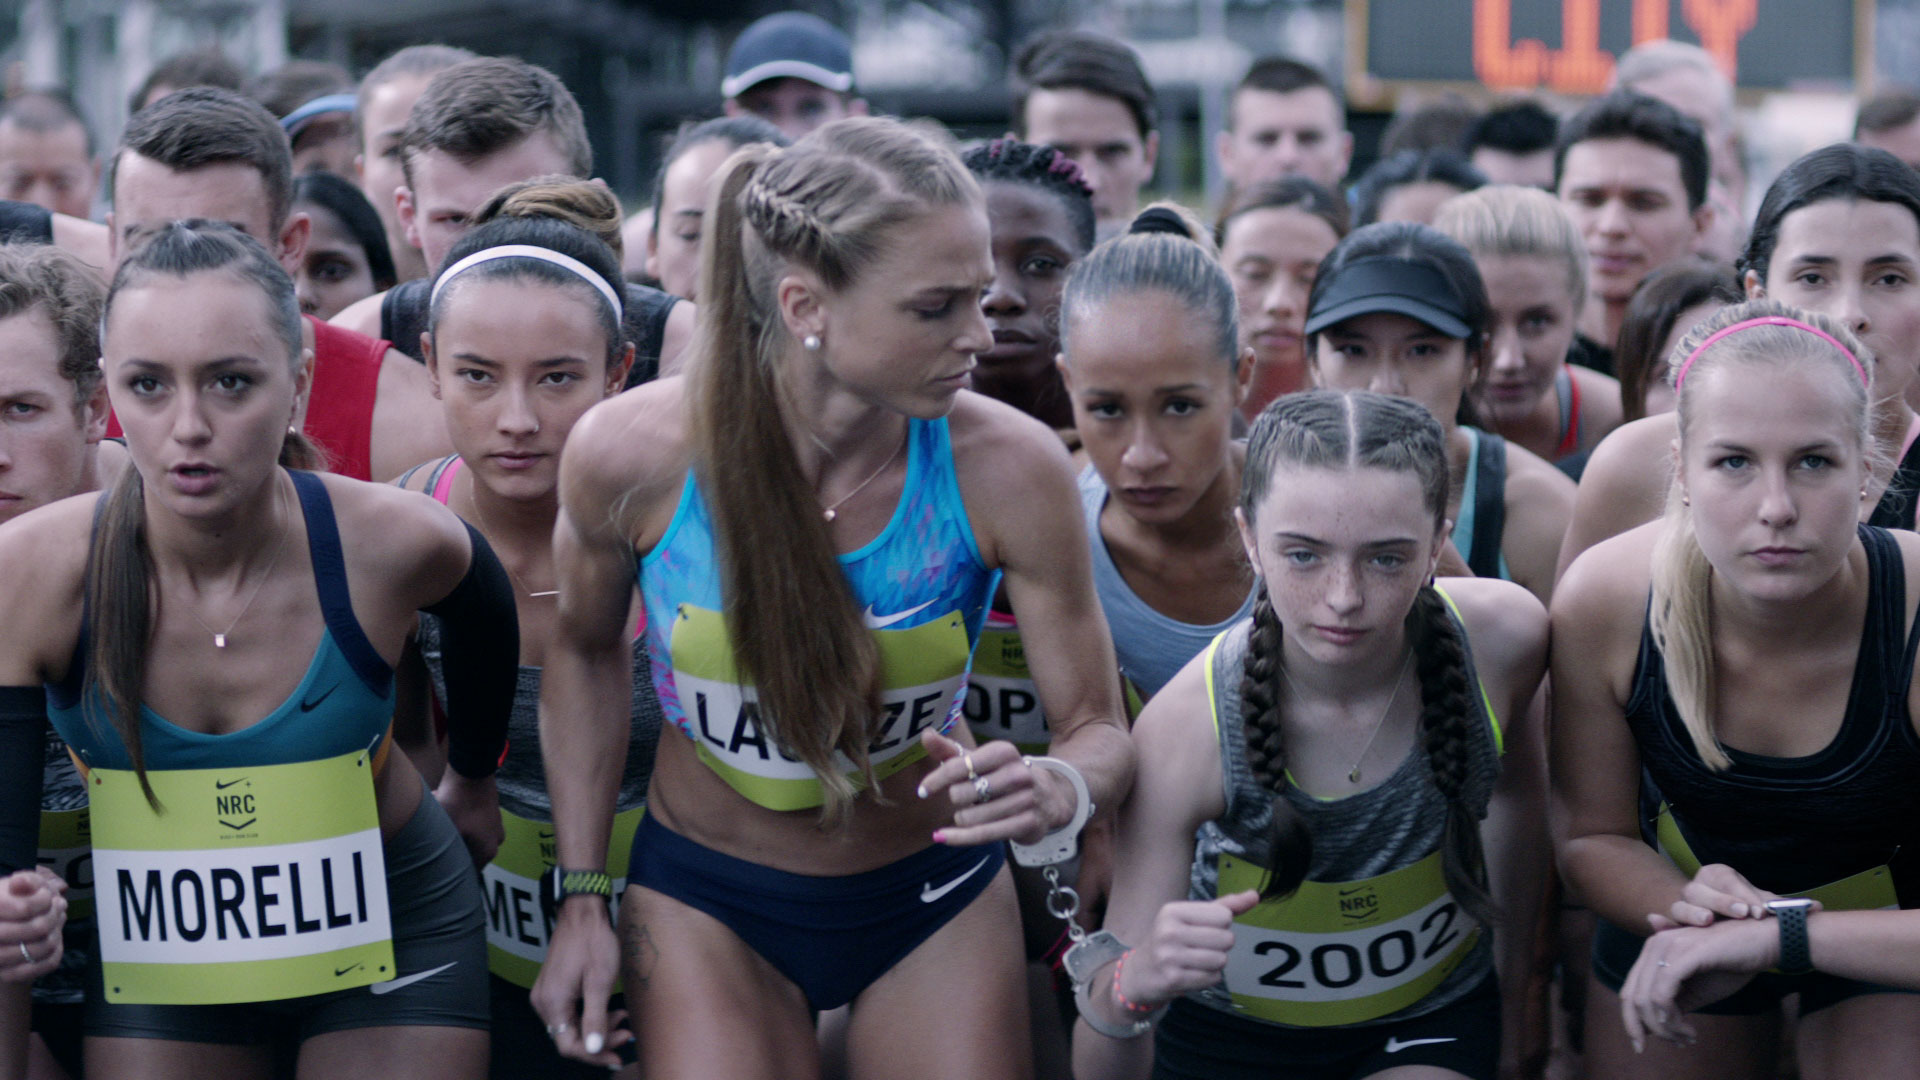 person outdoor human face clothing woman people group track and field athlete sports uniform crowd